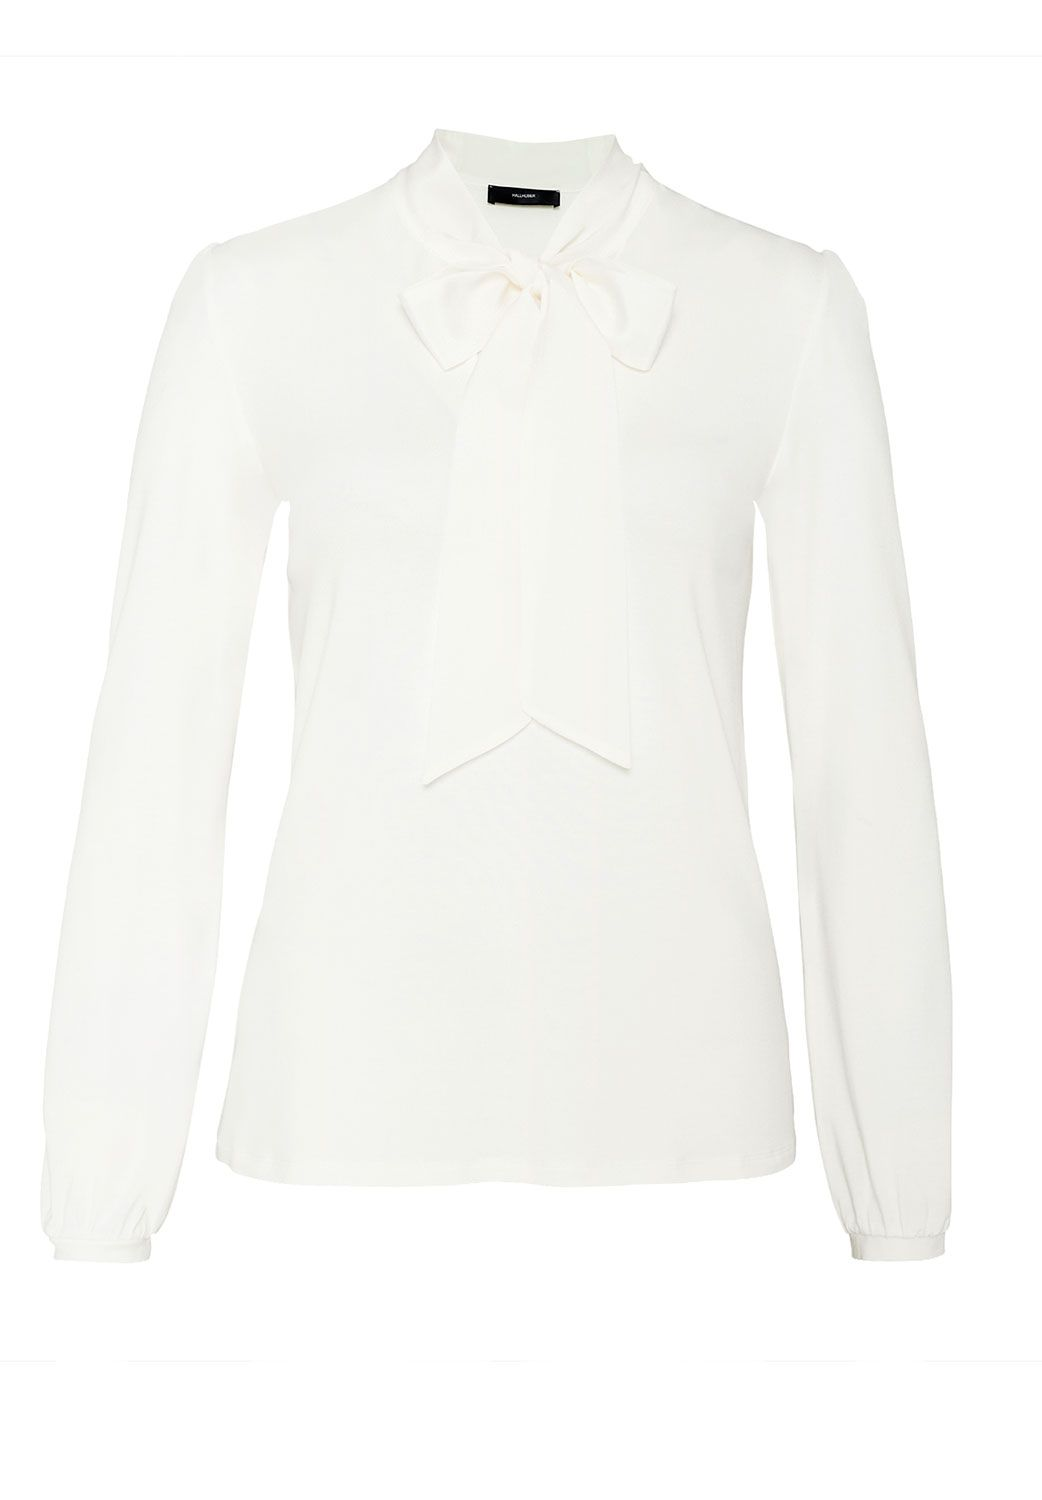 Hallhuber Long Sleeve, White